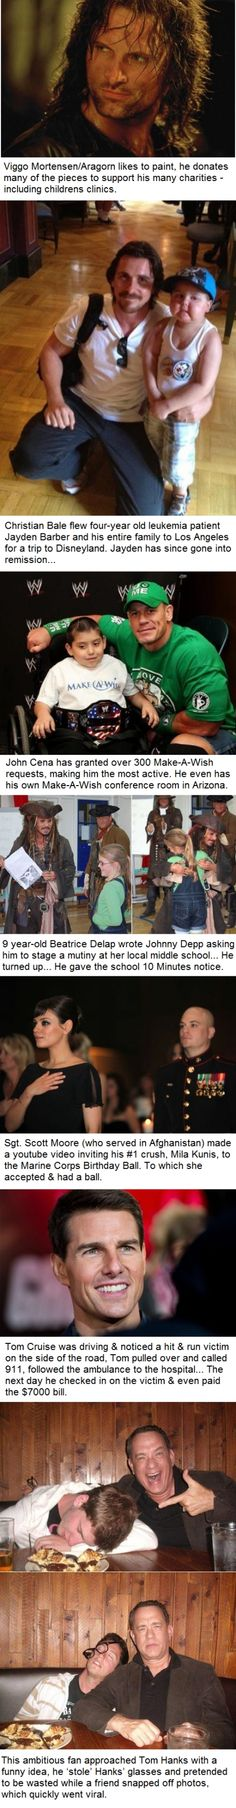 Good Guy (& Gal) Celebrities